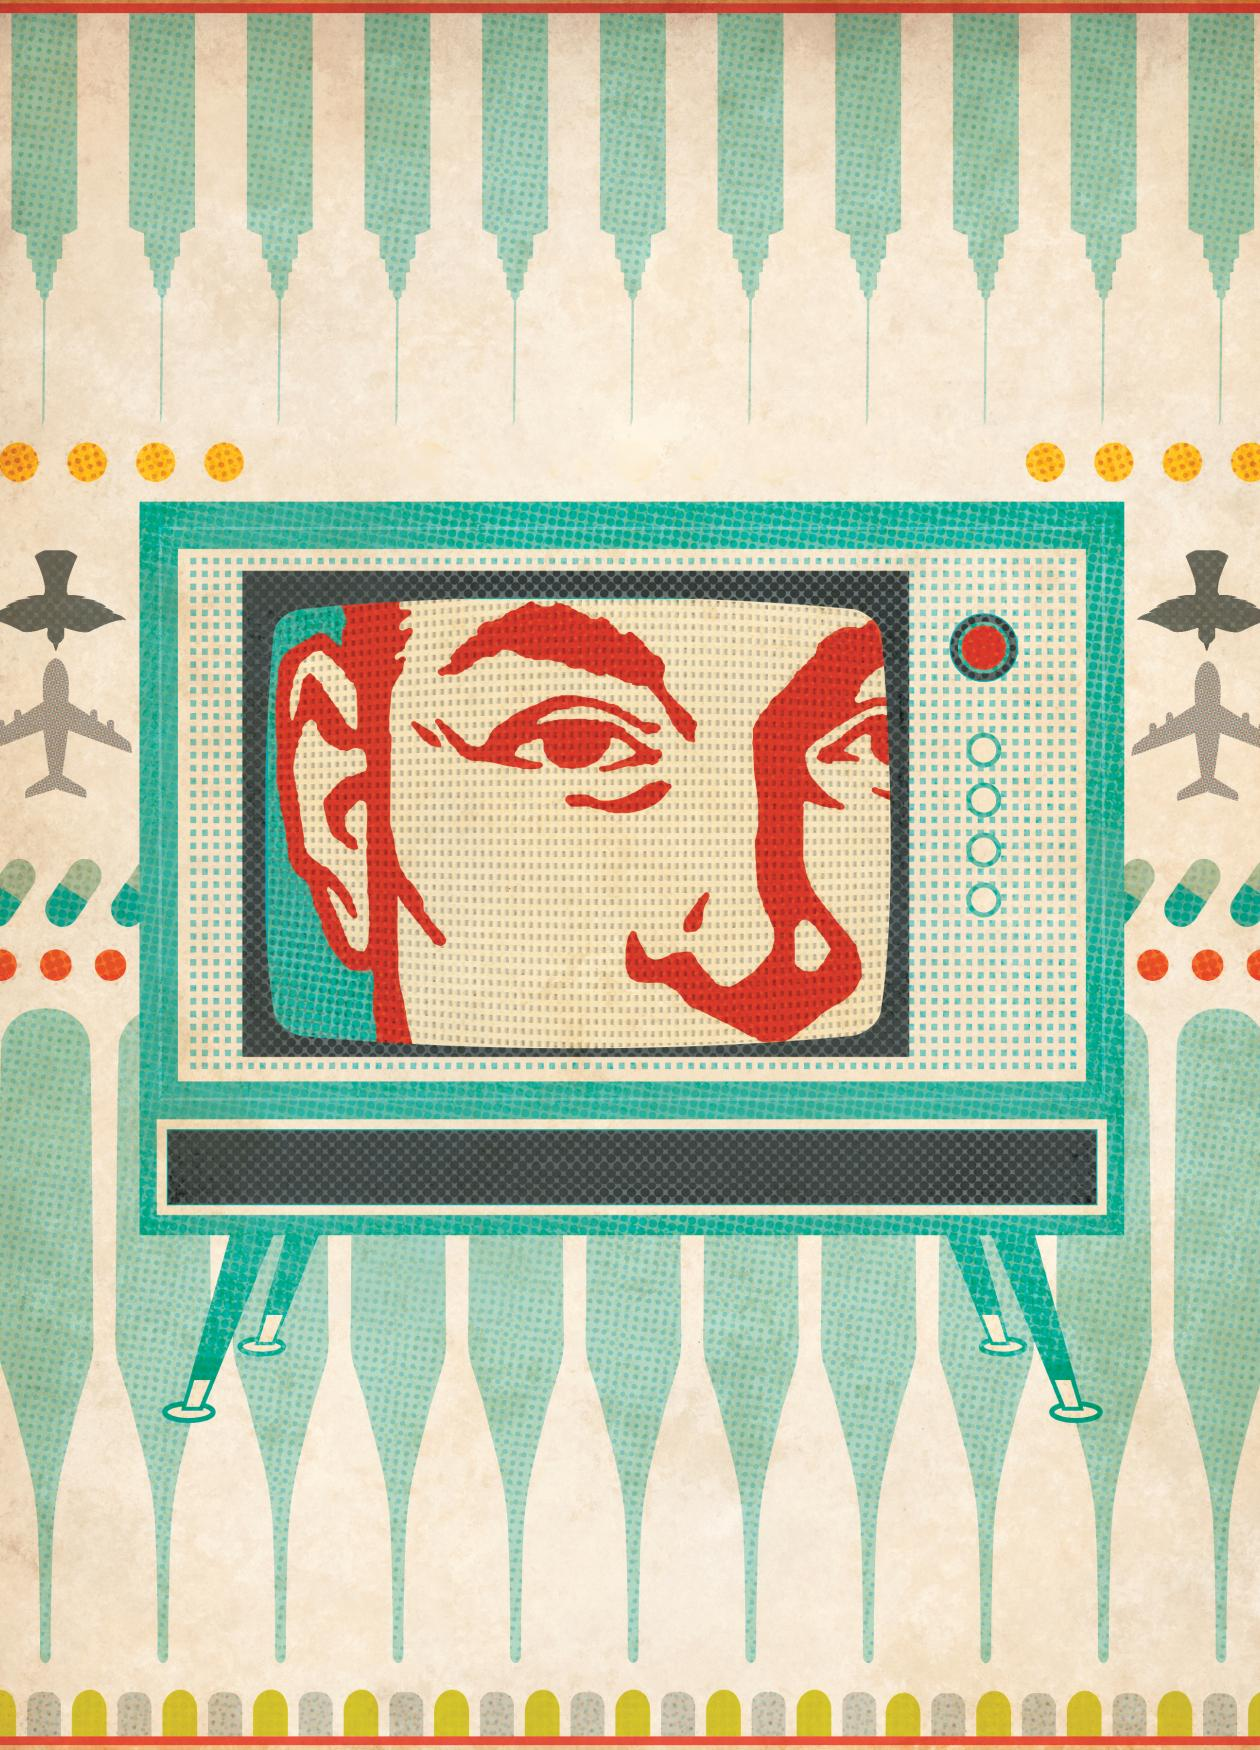 A color image showing a television with a man staring back through the screen.